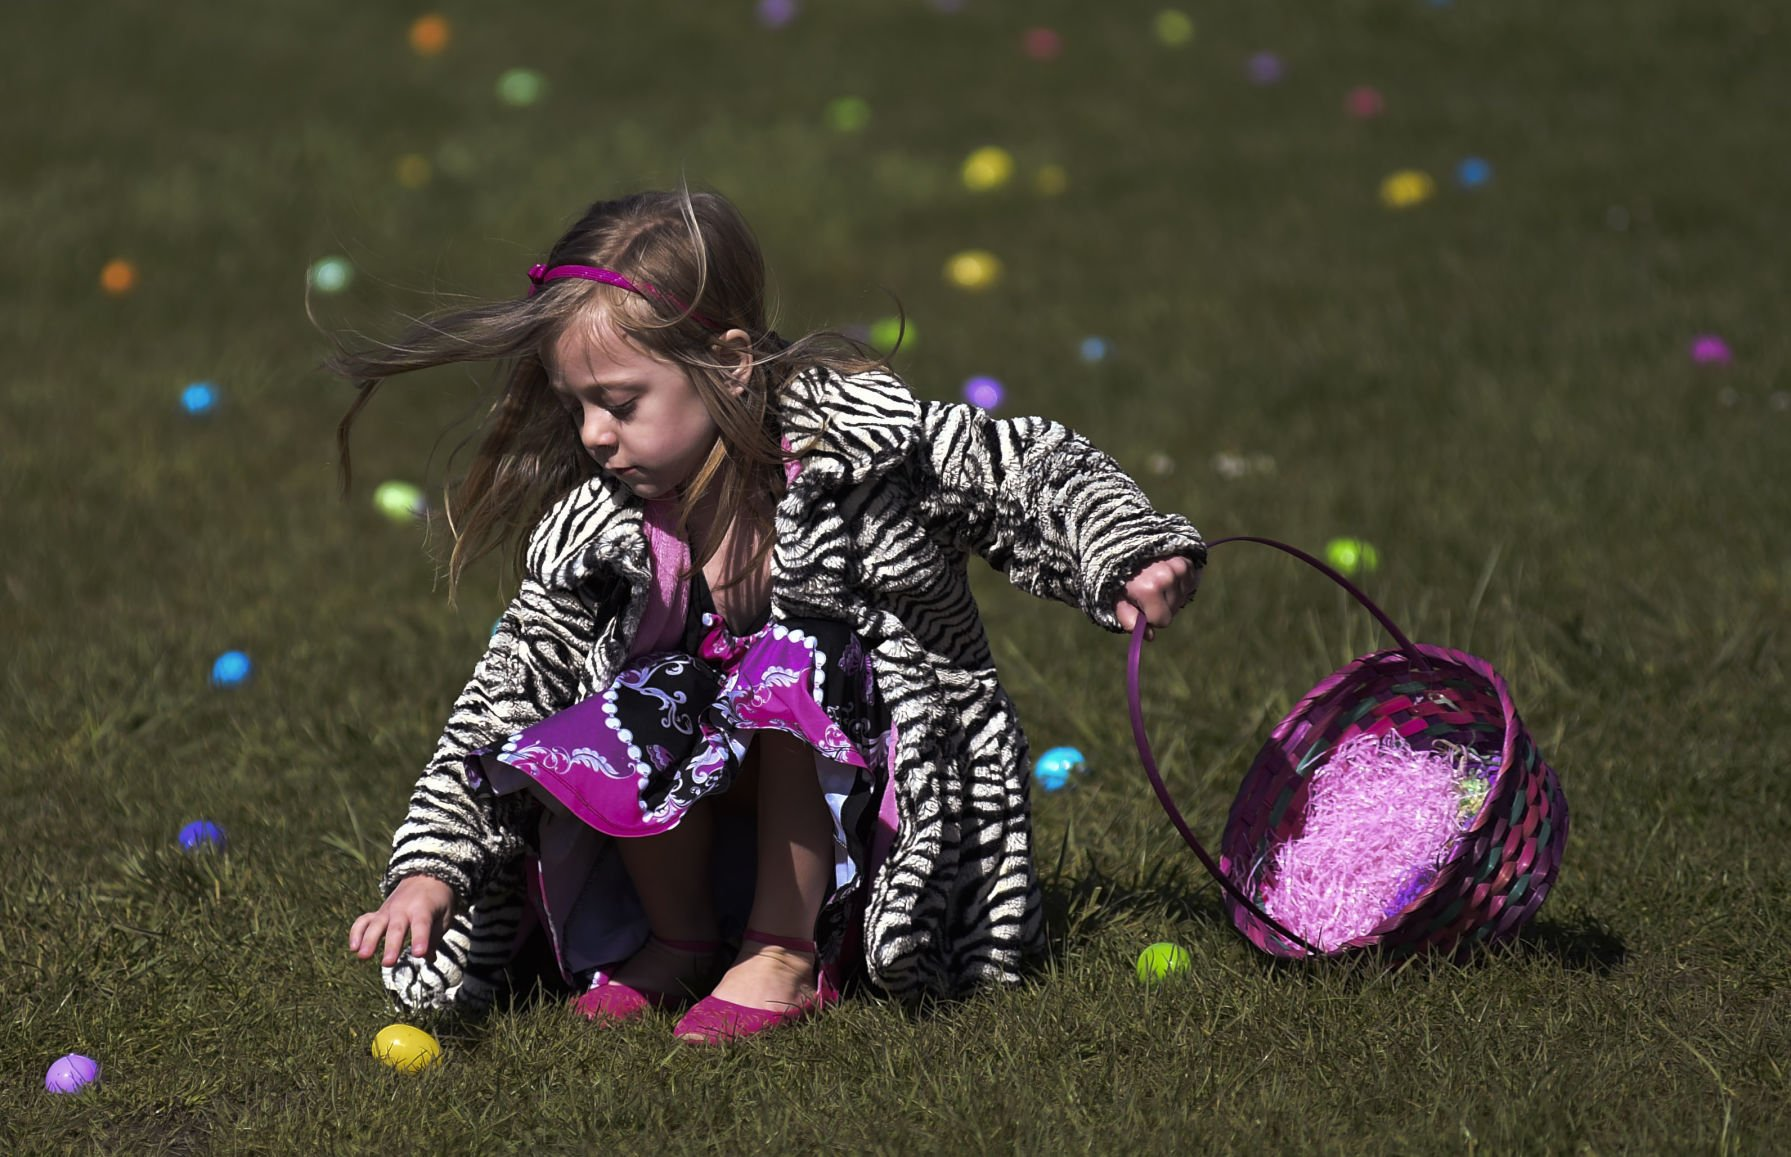 Thousands attend helicopter Easter egg drop in Killeen